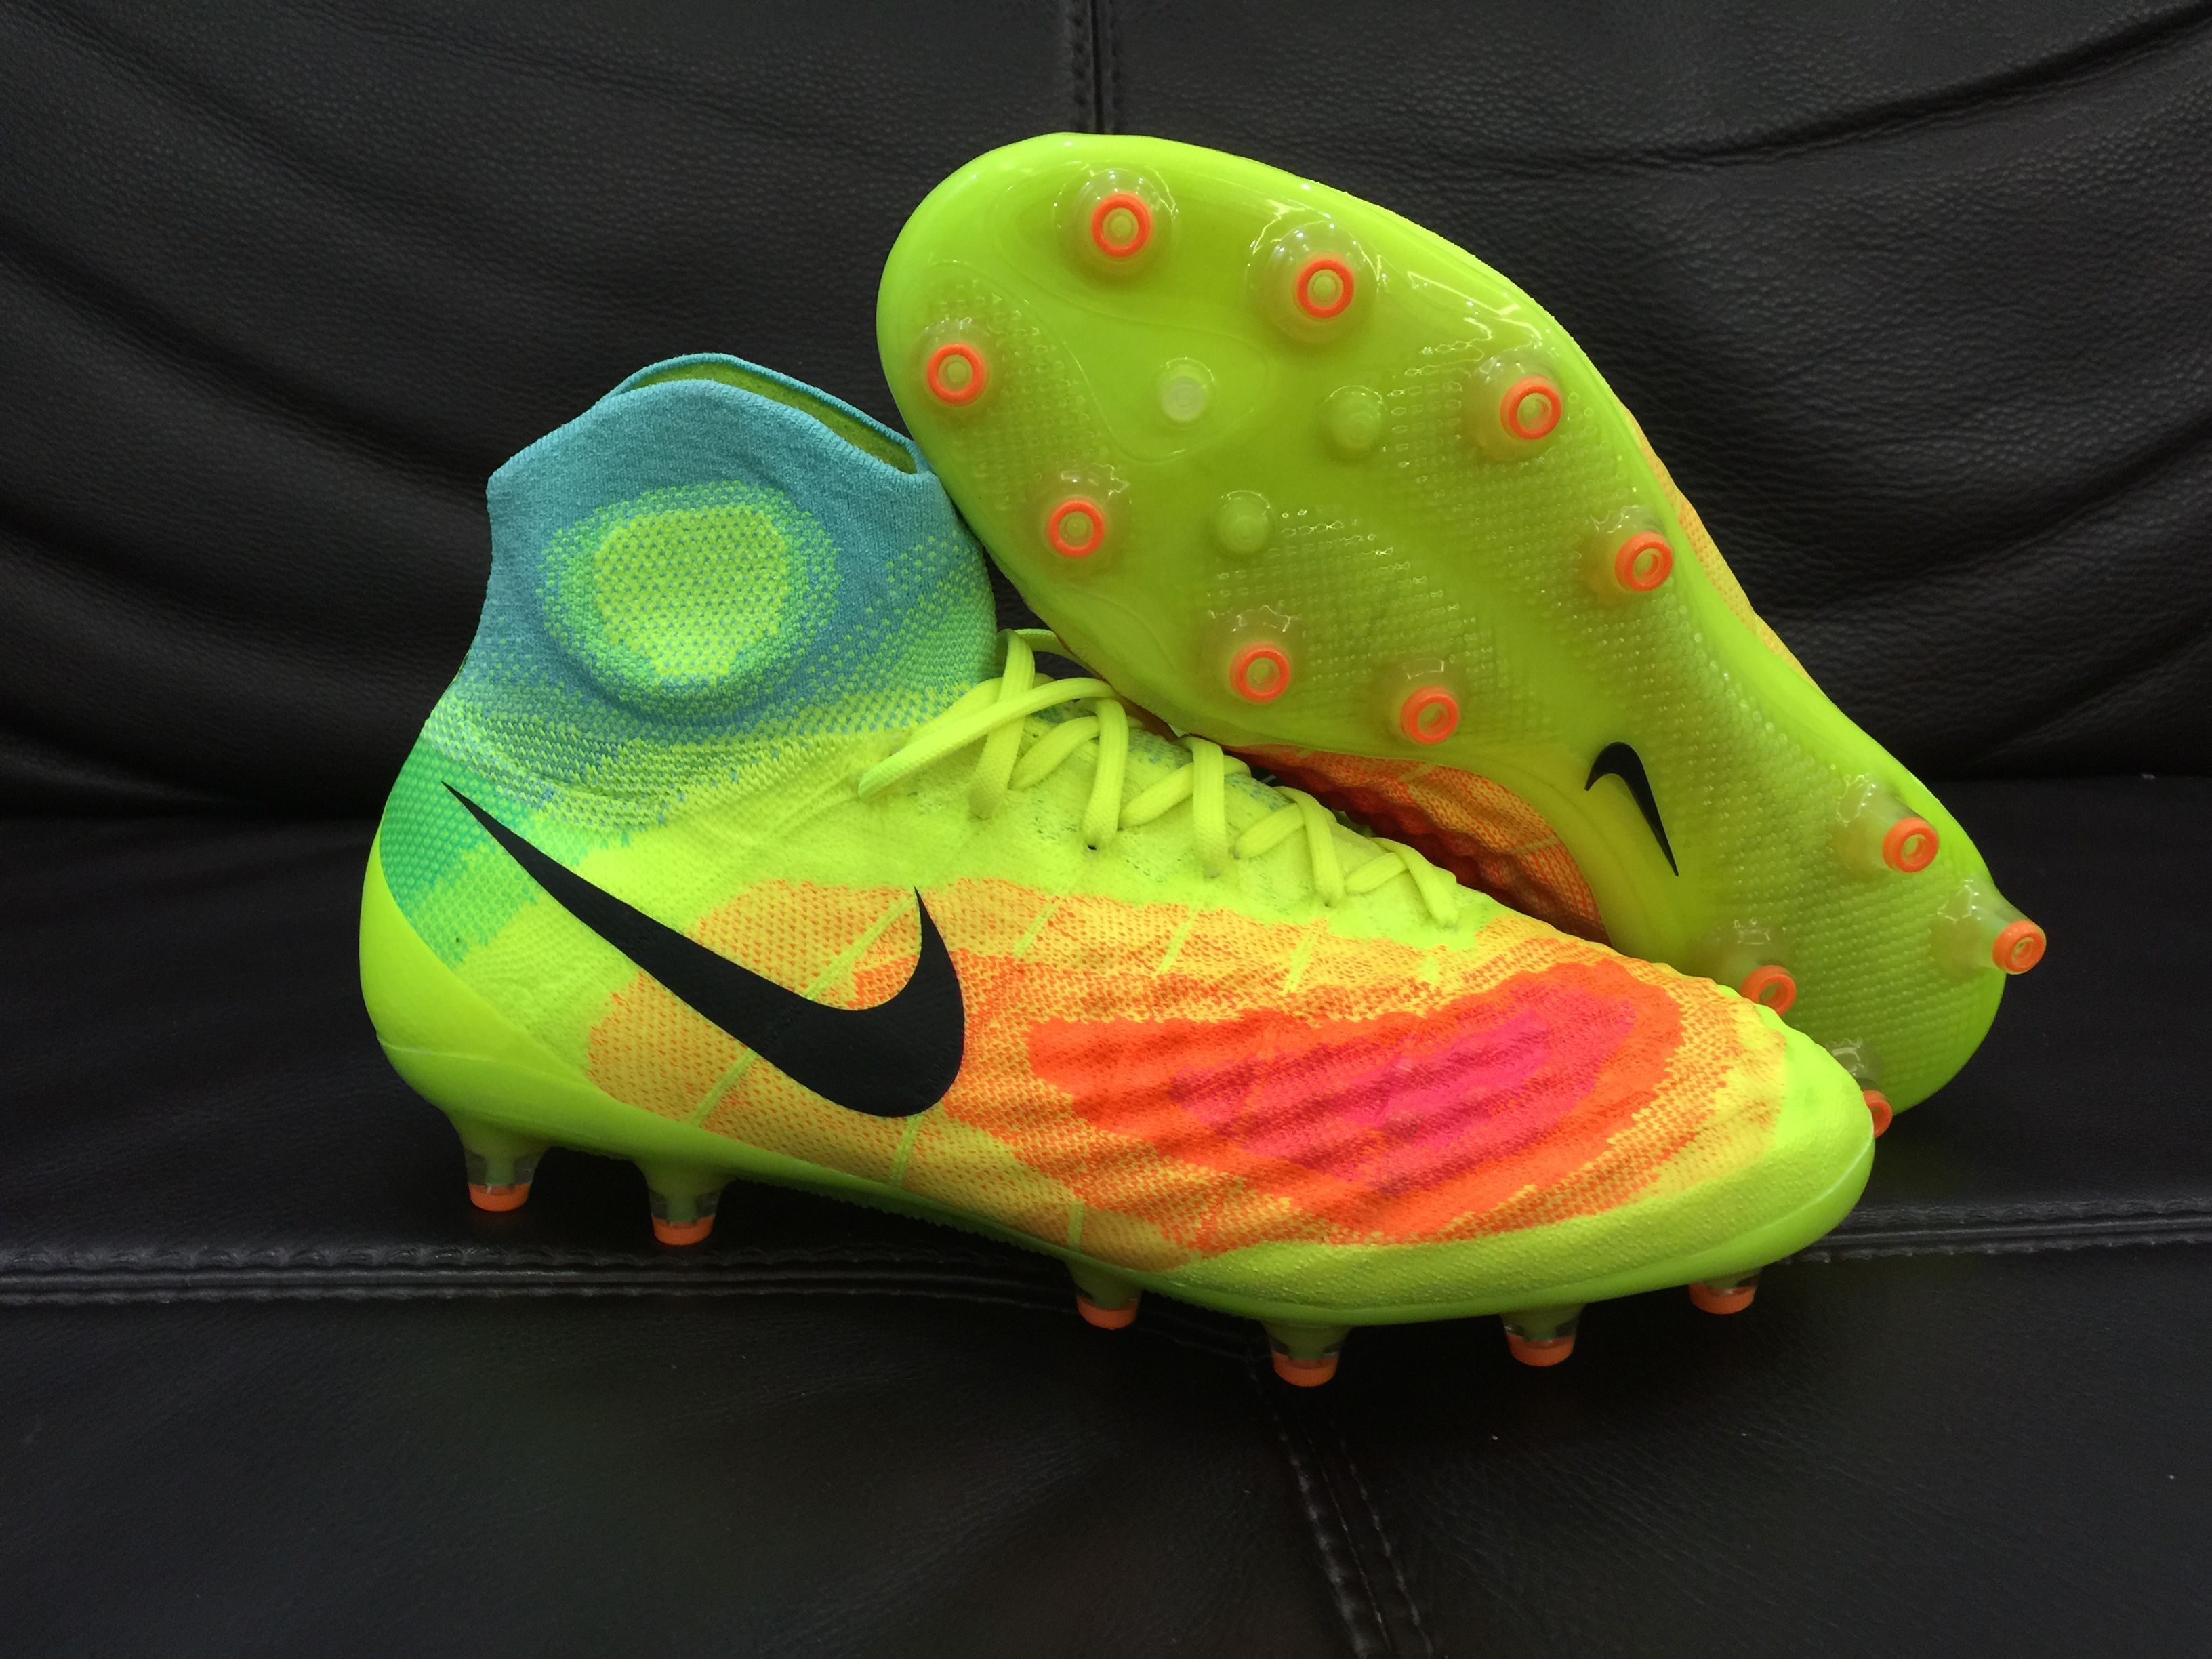 check out 95905 3cbcf 2016-17 all-new Nike Magista Obra 2 soccer boots combine a heightened collar